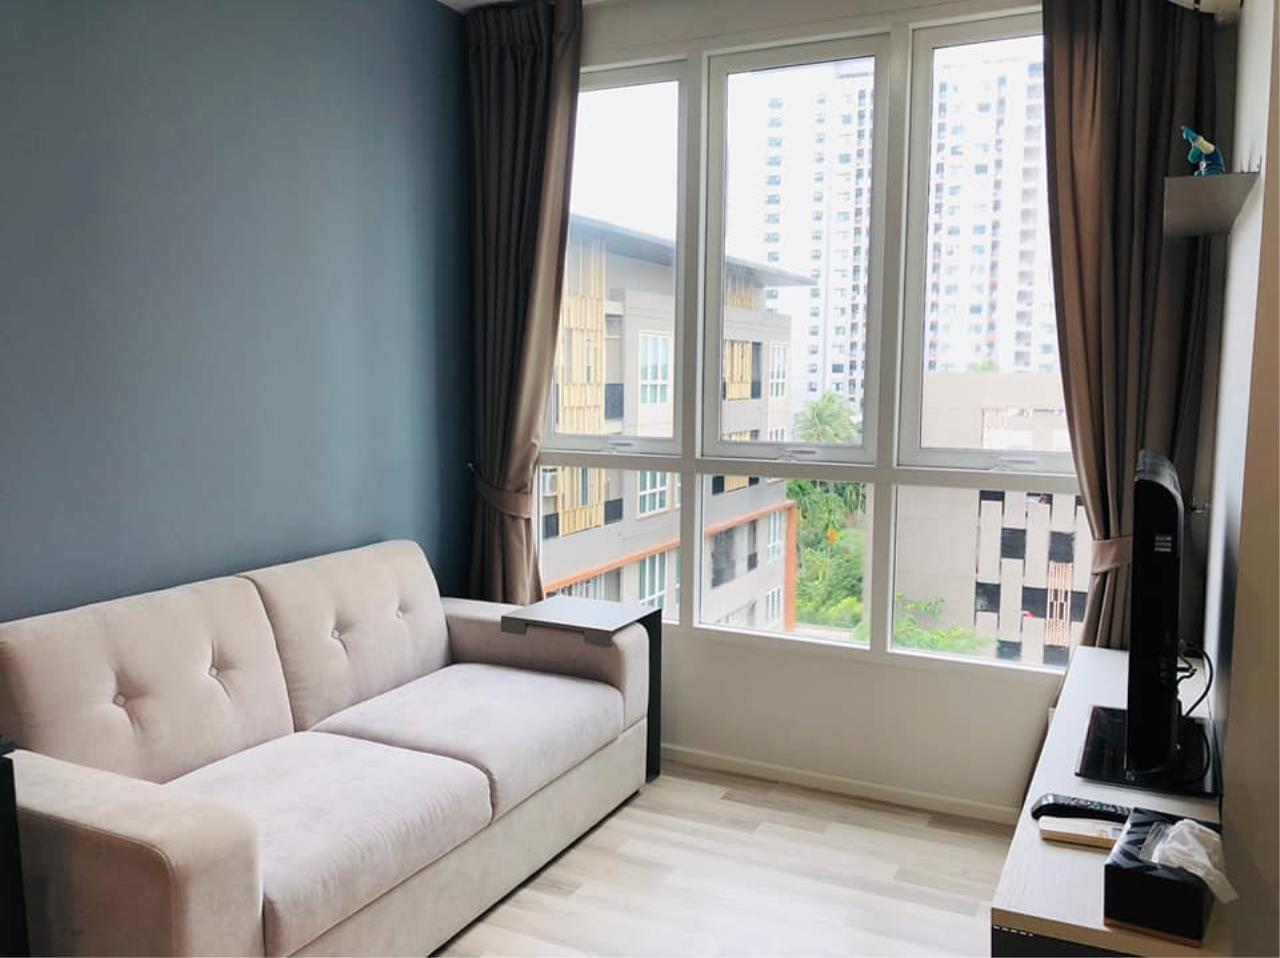 Agent - Prombood Agency's Sale - For Rent 1 Bedroom (Corner Unit) 31.95 sq.m. The Key Sathorn-Ratchapruek near Wutthakat BTS Station 7